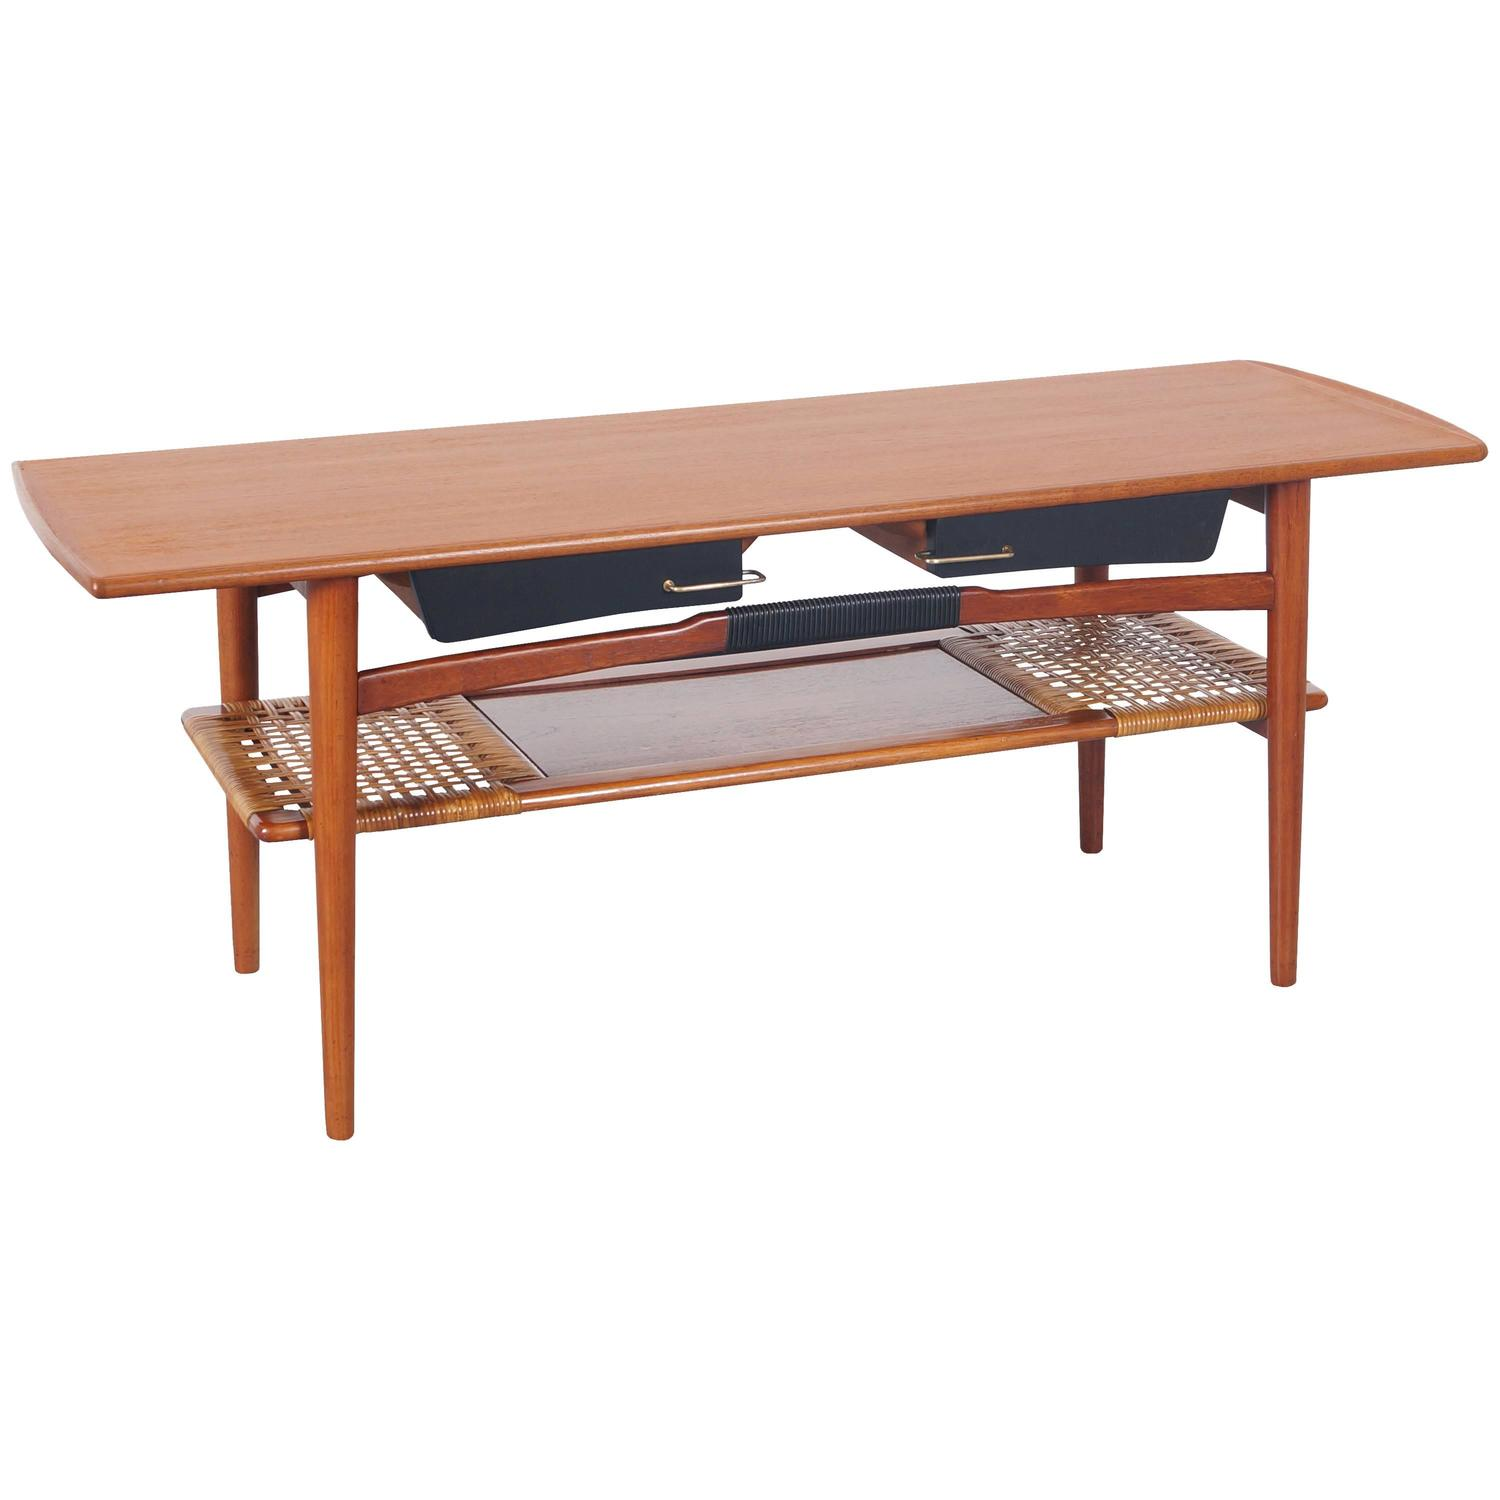 Danish modern teak coffee table for sale at 1stdibs for Modern coffee table sale